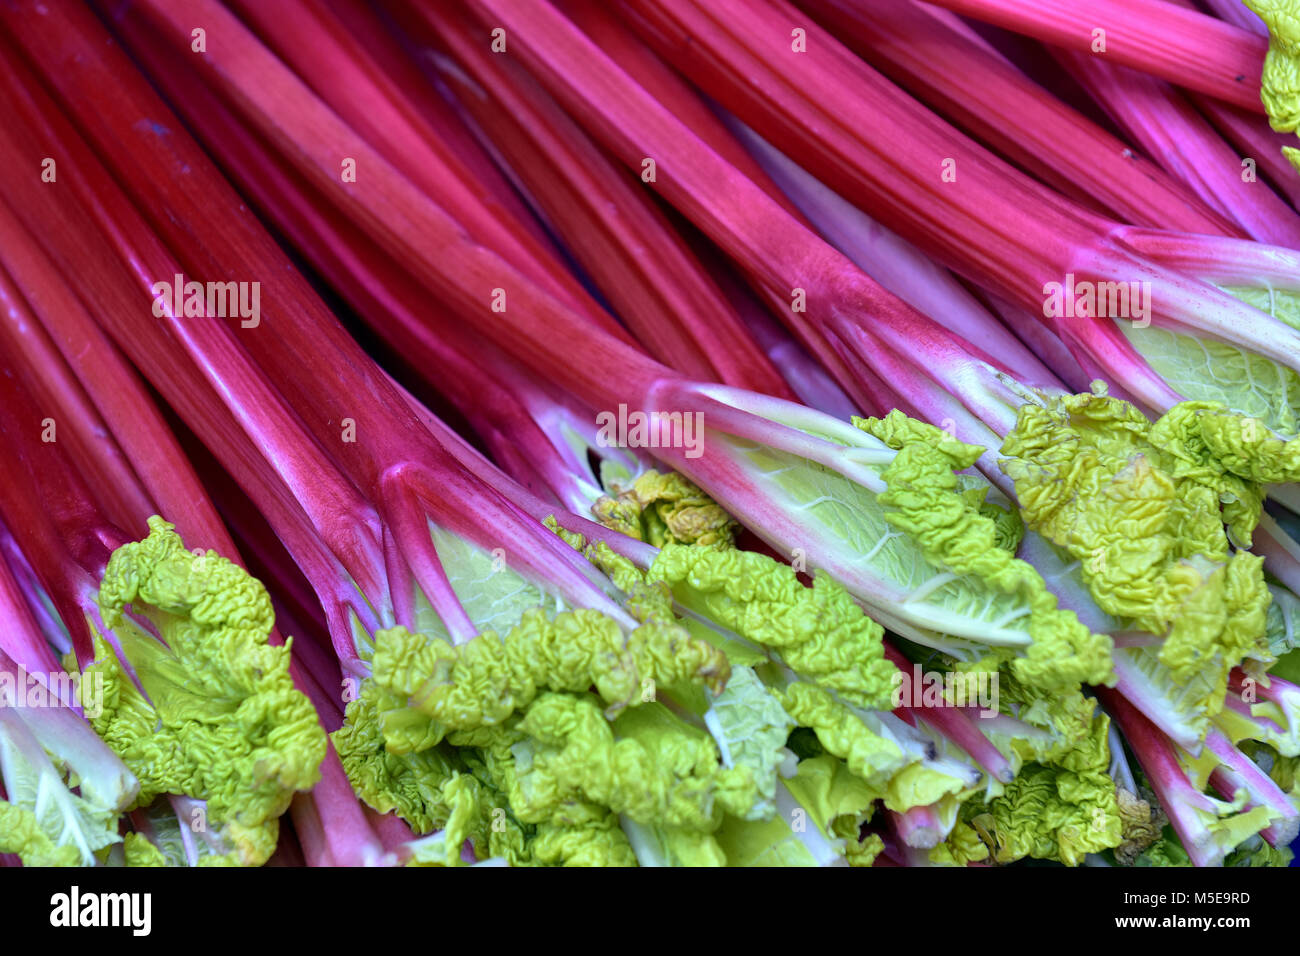 fresh rhubarb on display at a greengrocers fruit and vegetables stall at borough market in central london. Rhubarb Stock Photo